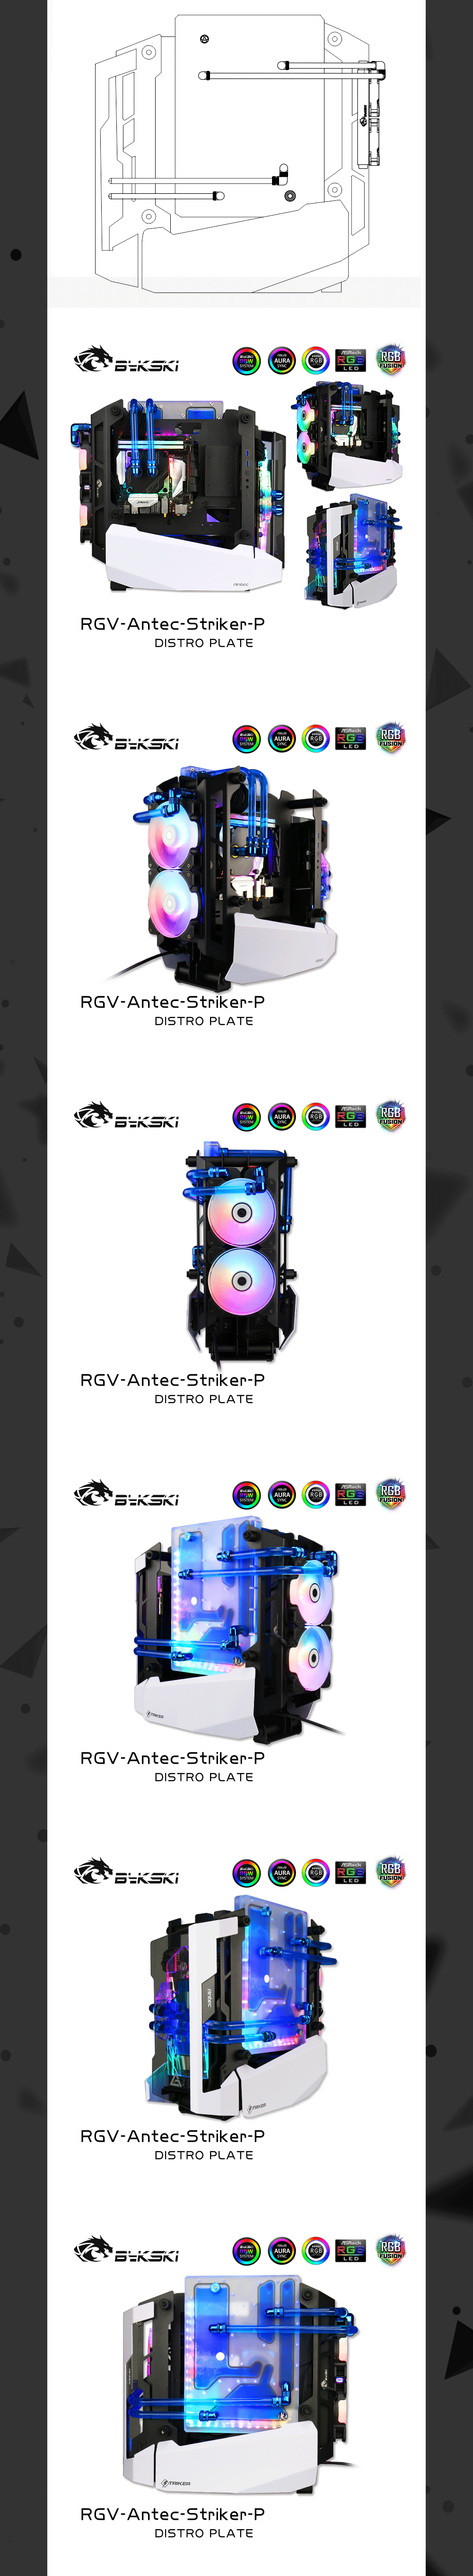 Bykski RGV-Antec-Striker-P Waterway Boards For Antec Striker Case For Intel CPU Water Block & Single GPU Building Bykski RGV-Antec-Striker Waterway Boards For Antec Striker Case For Intel CPU Water Block & Single GPU Building GPU Water Block For Antec Striker Case,bykski water cooling review,GPU Water Block Building